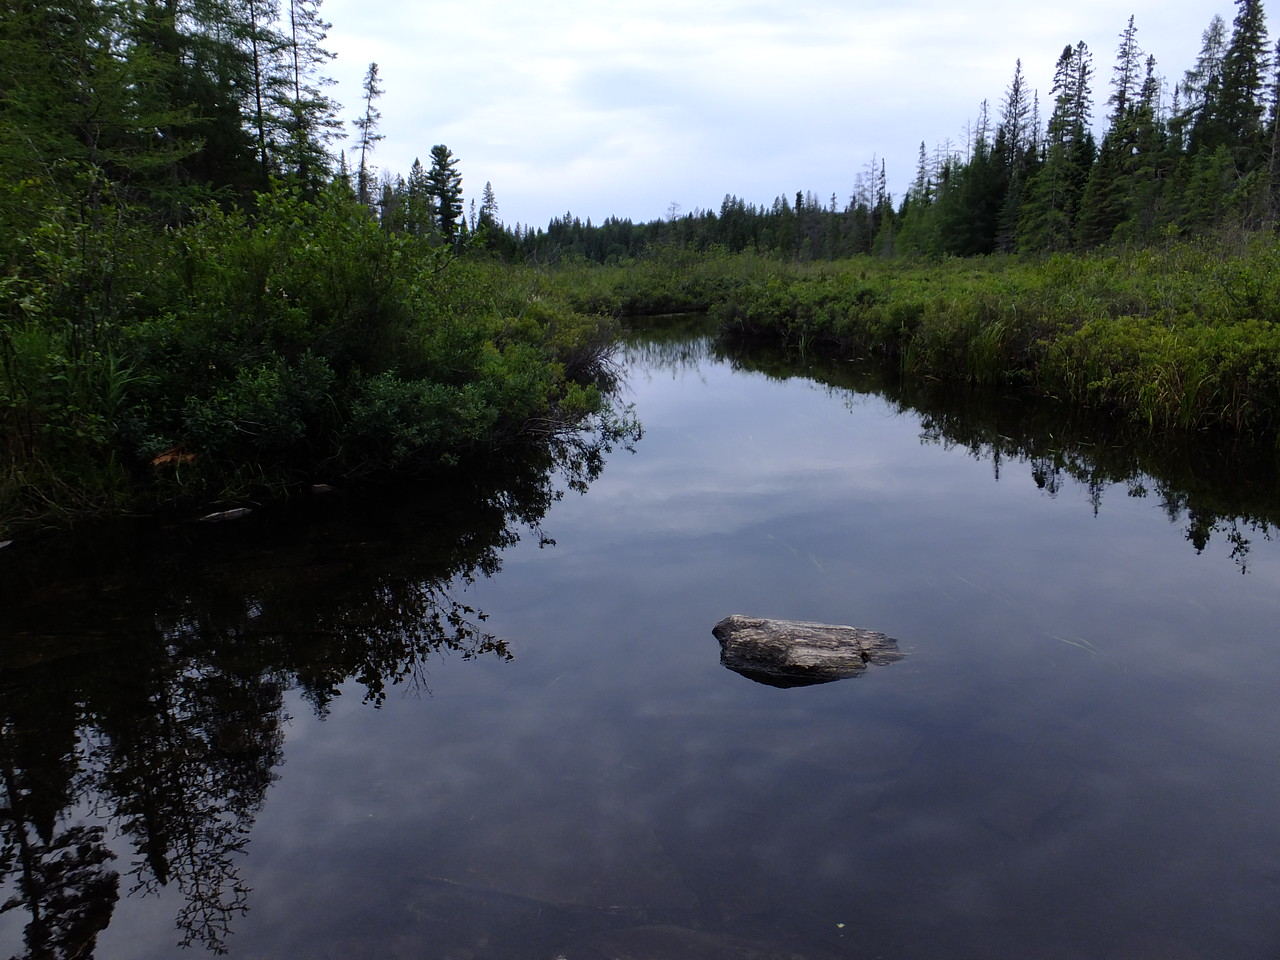 This typical northern stream will lead to Big Trout Lake